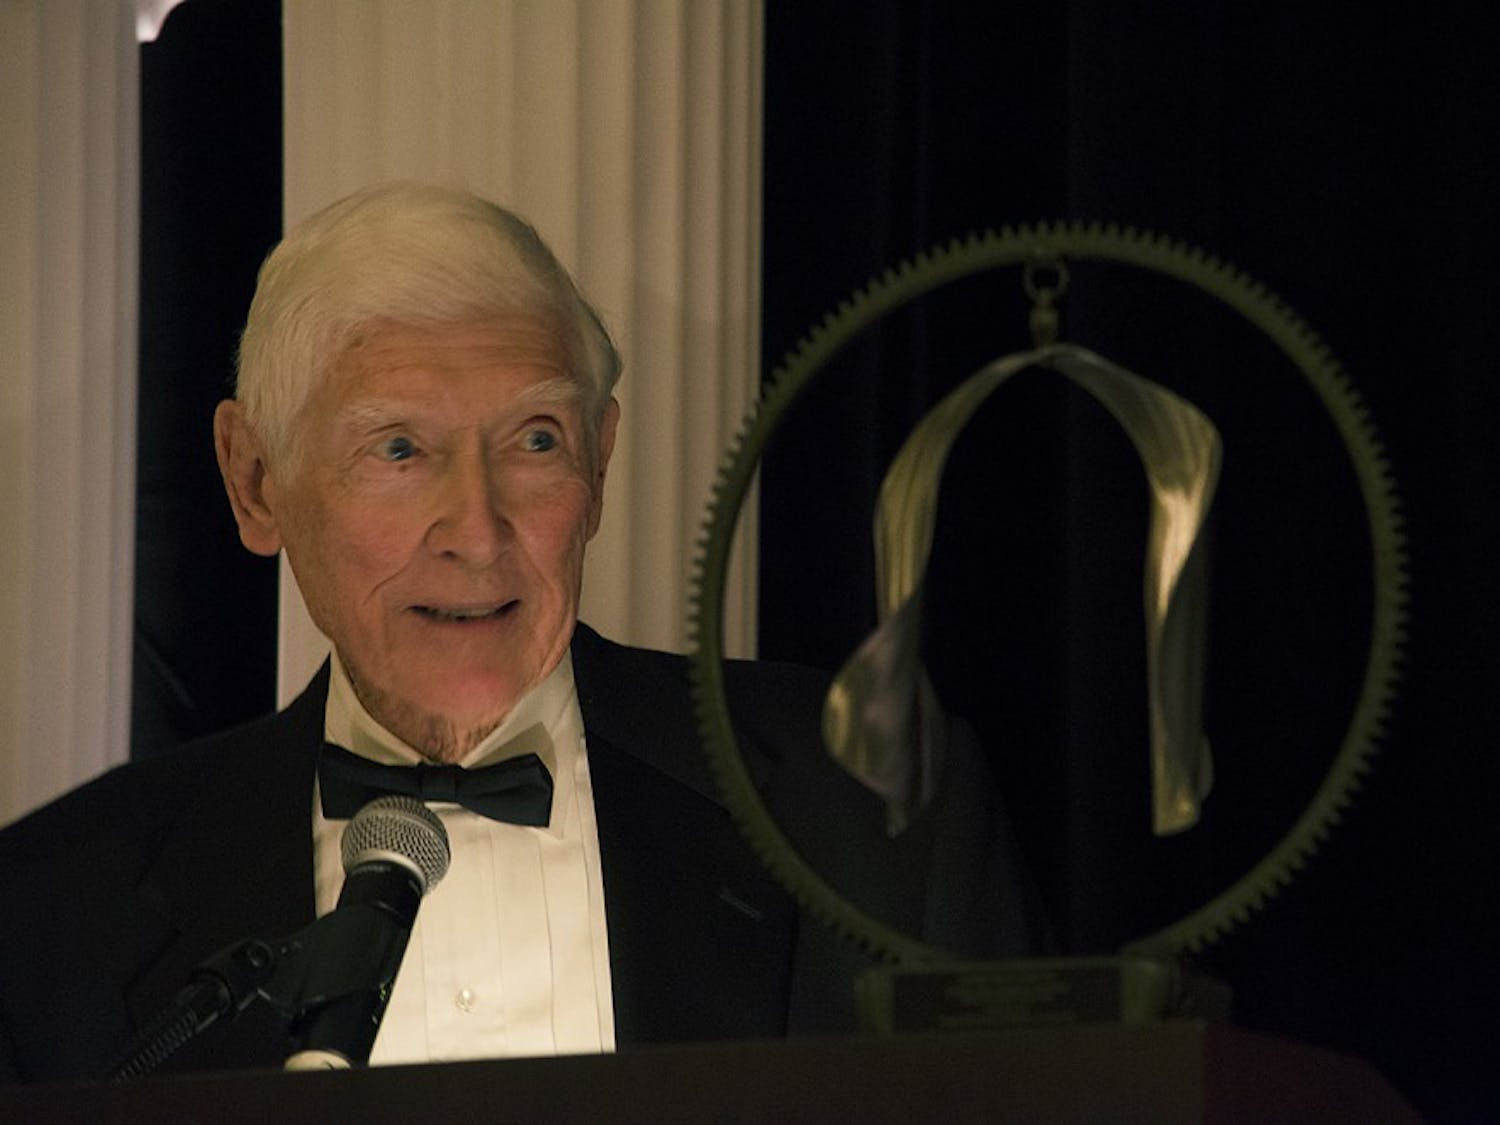 The Chapel Hill-Carrboro Chamber of Commerce honored Sandy McClamroch, the founder of the flagship local radio station WCHL and former Chapel Hill mayor.